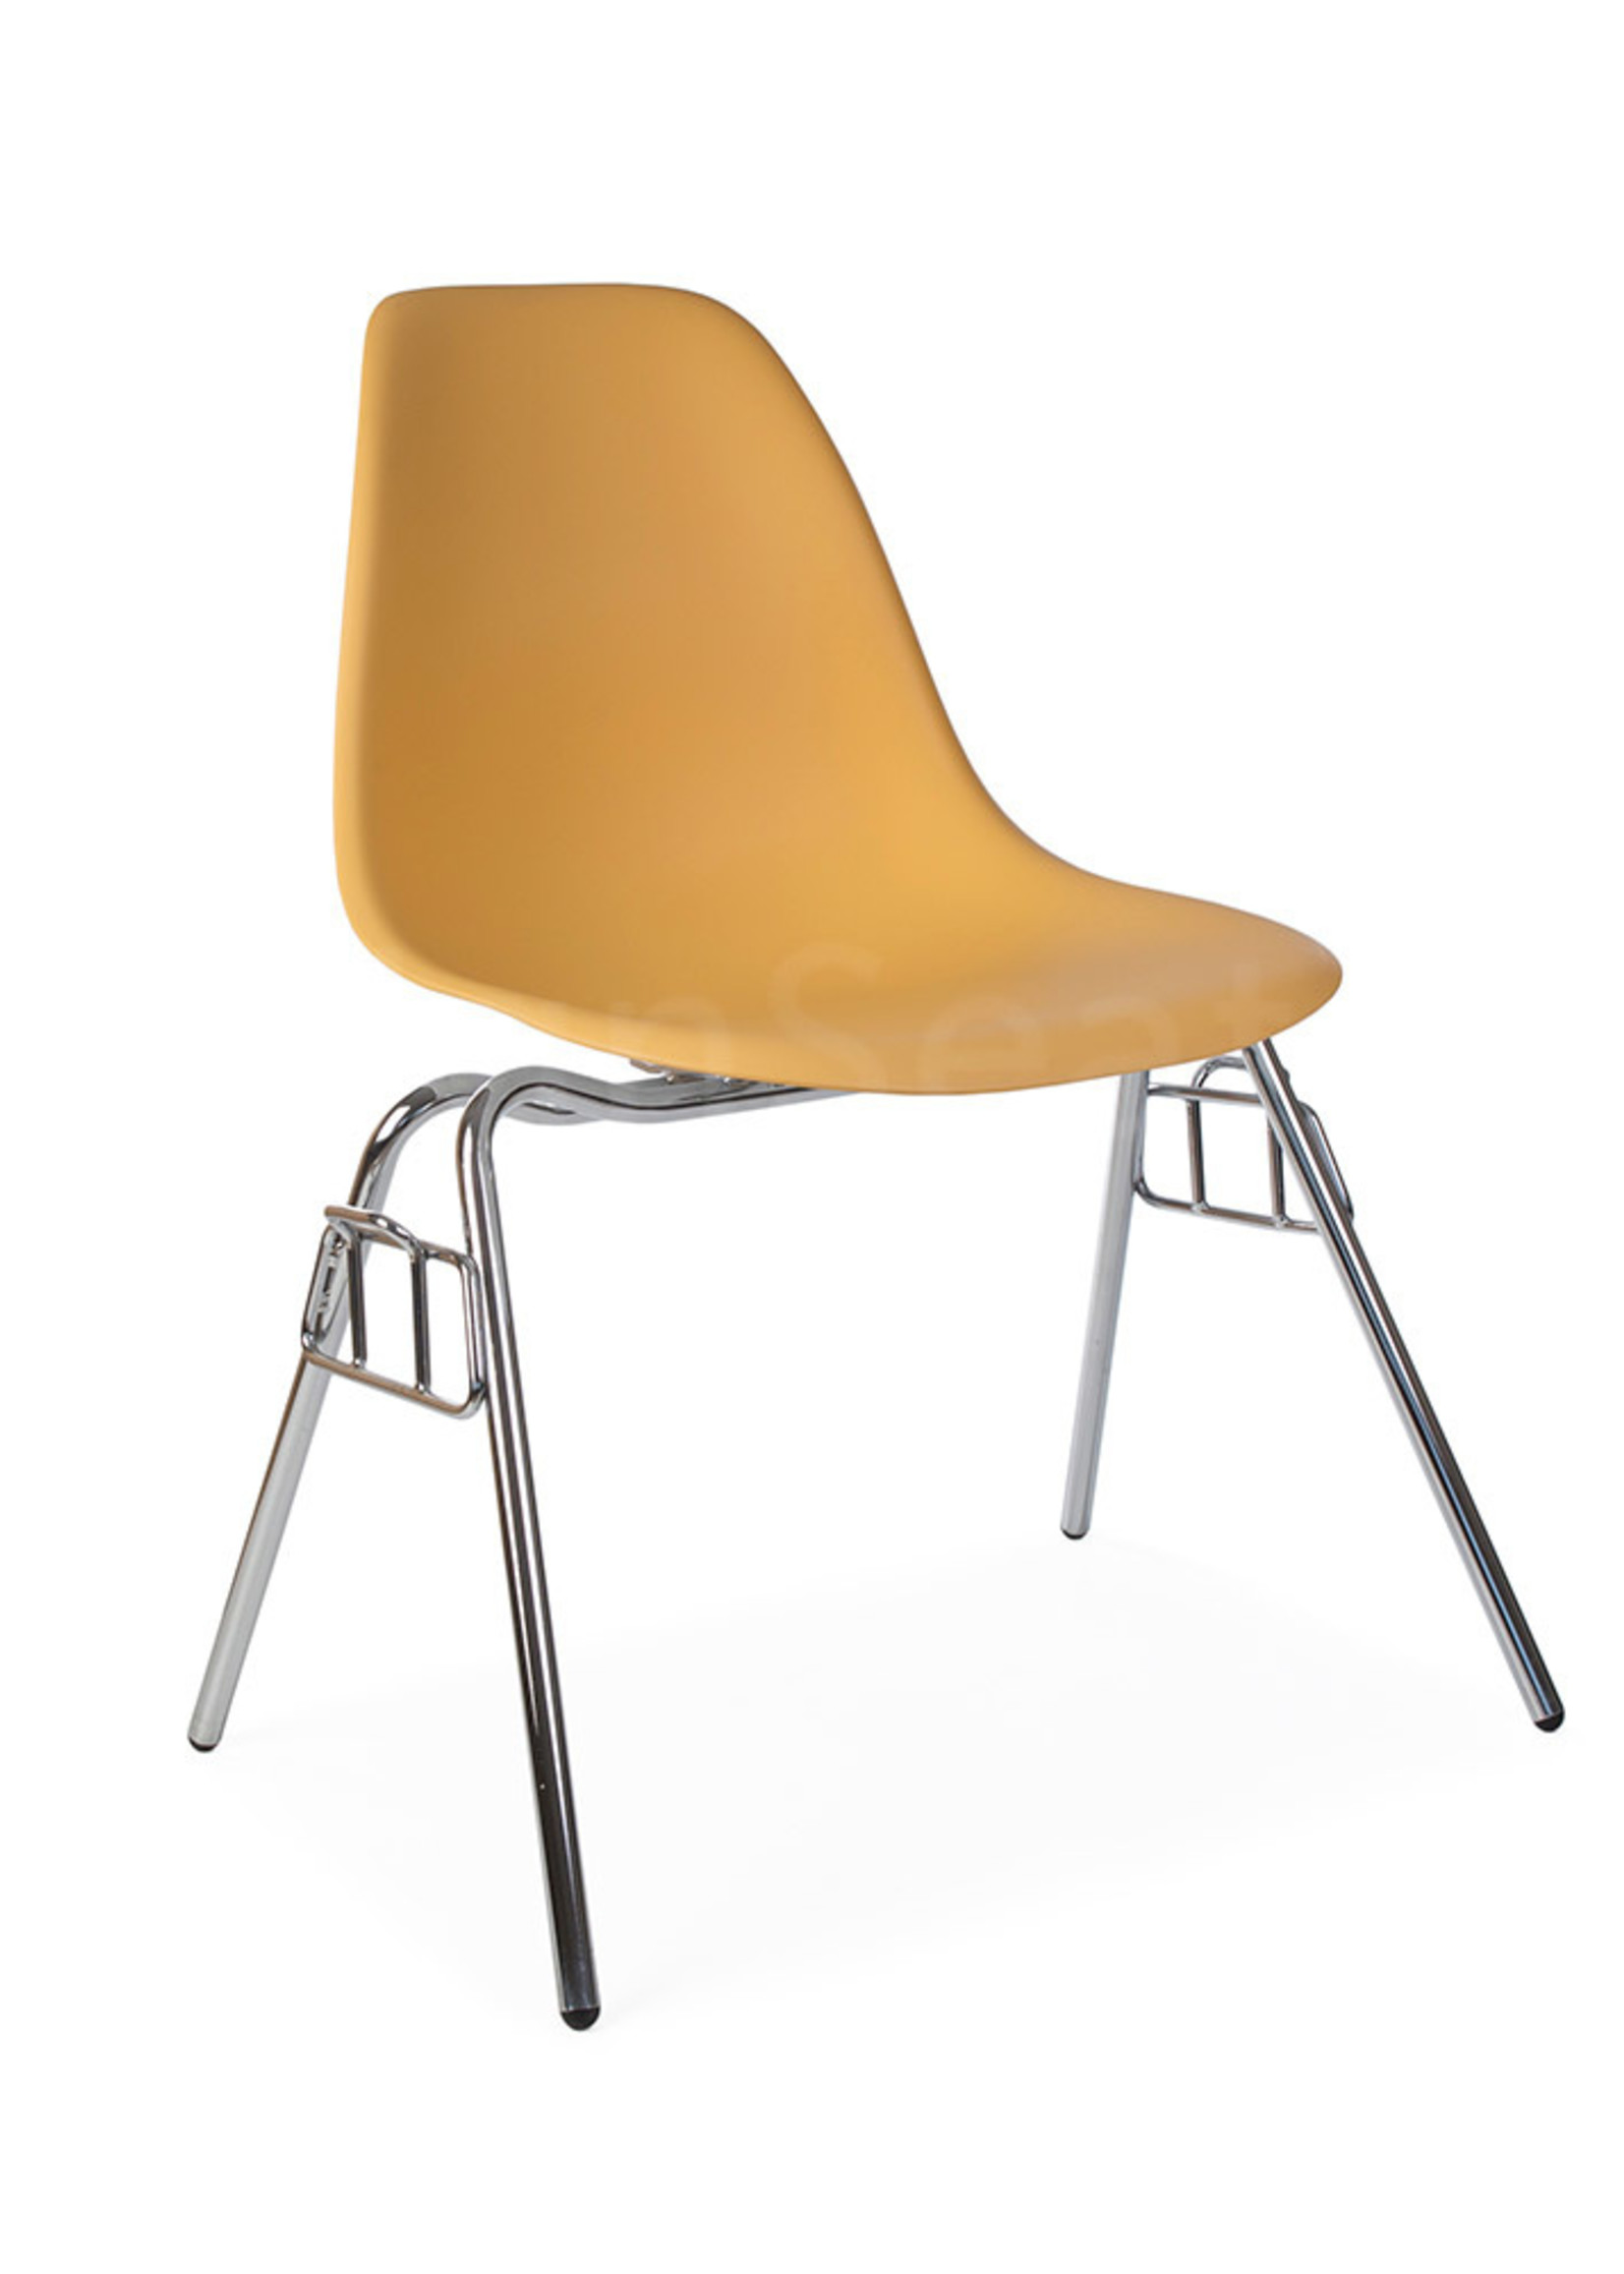 DSS Stacking Chair Dining Chair Orange